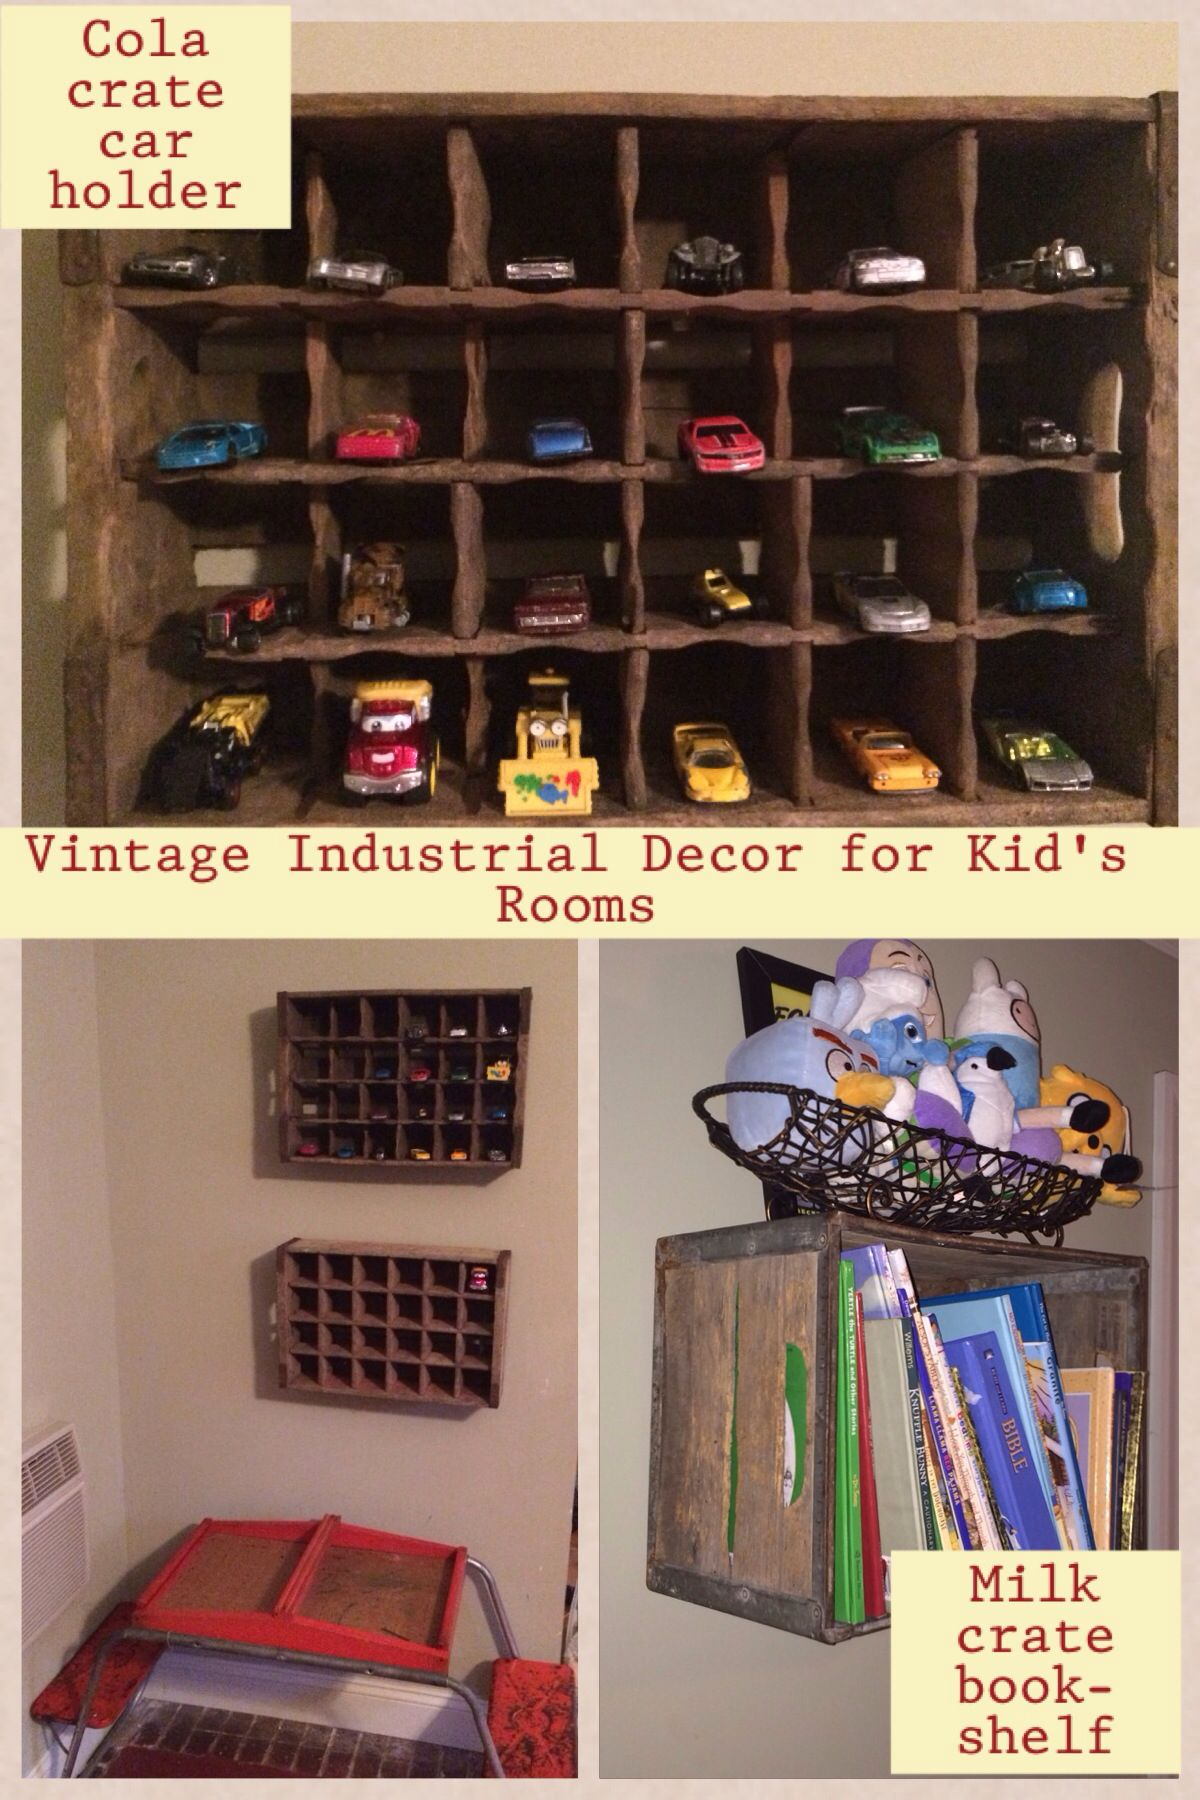 Double cola, Pepsi, and milk crates as storage for our boys' things in our vintage industrial room. Pinterest inspired